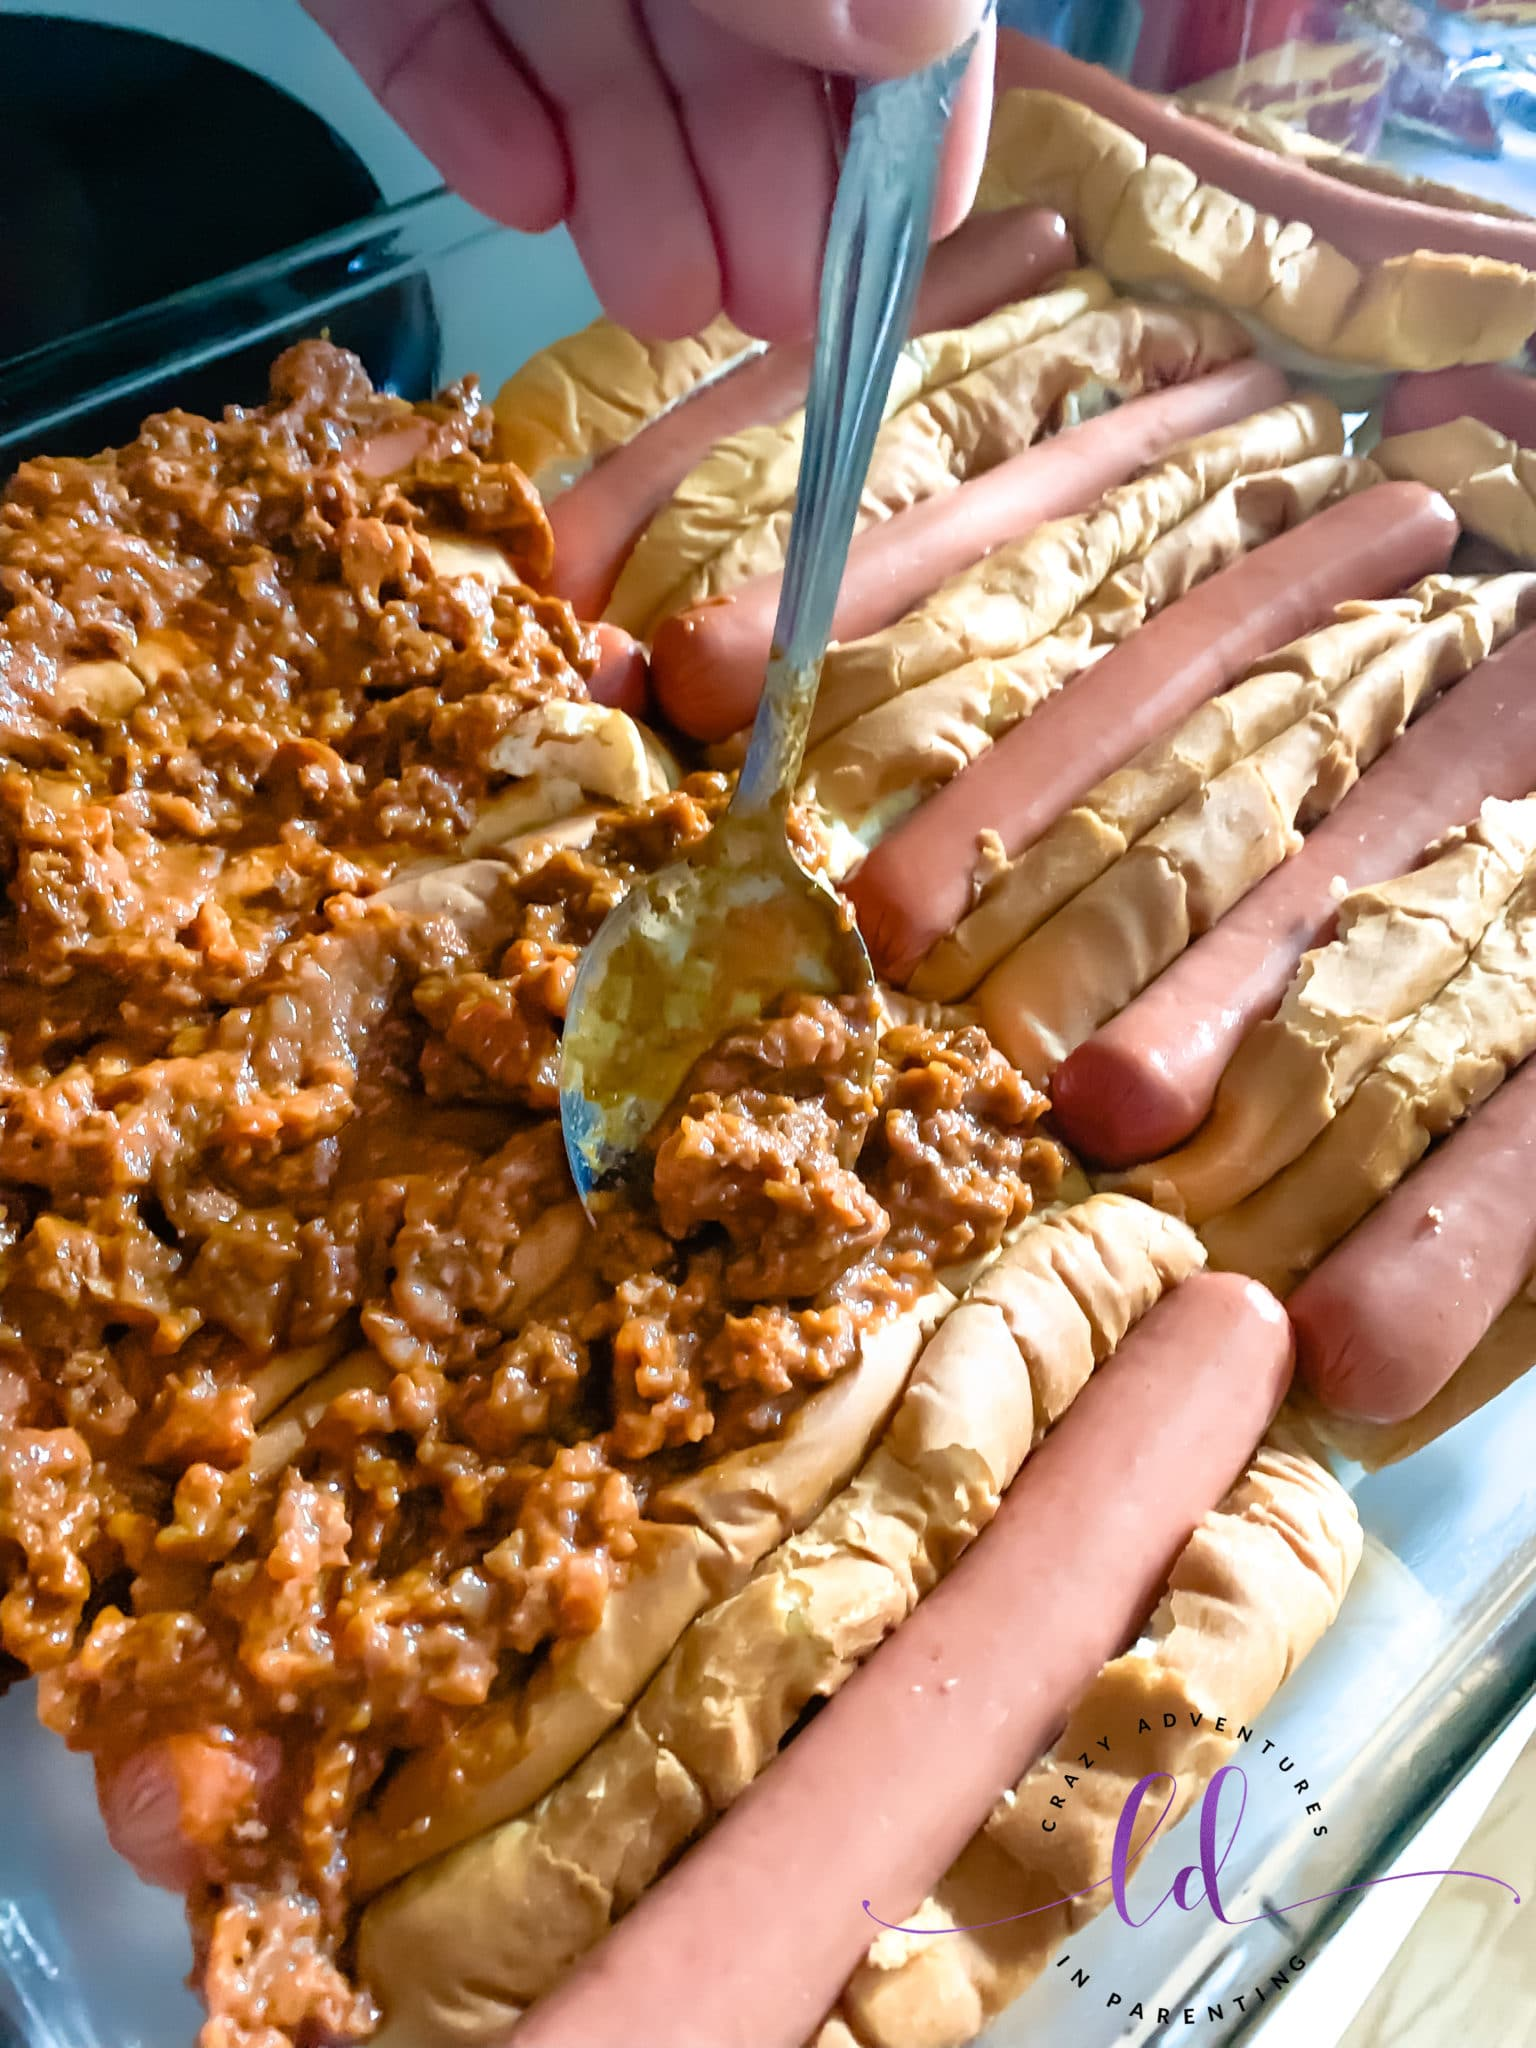 Add Chili to Hot Dogs to Make Easy Baked Chili Dogs